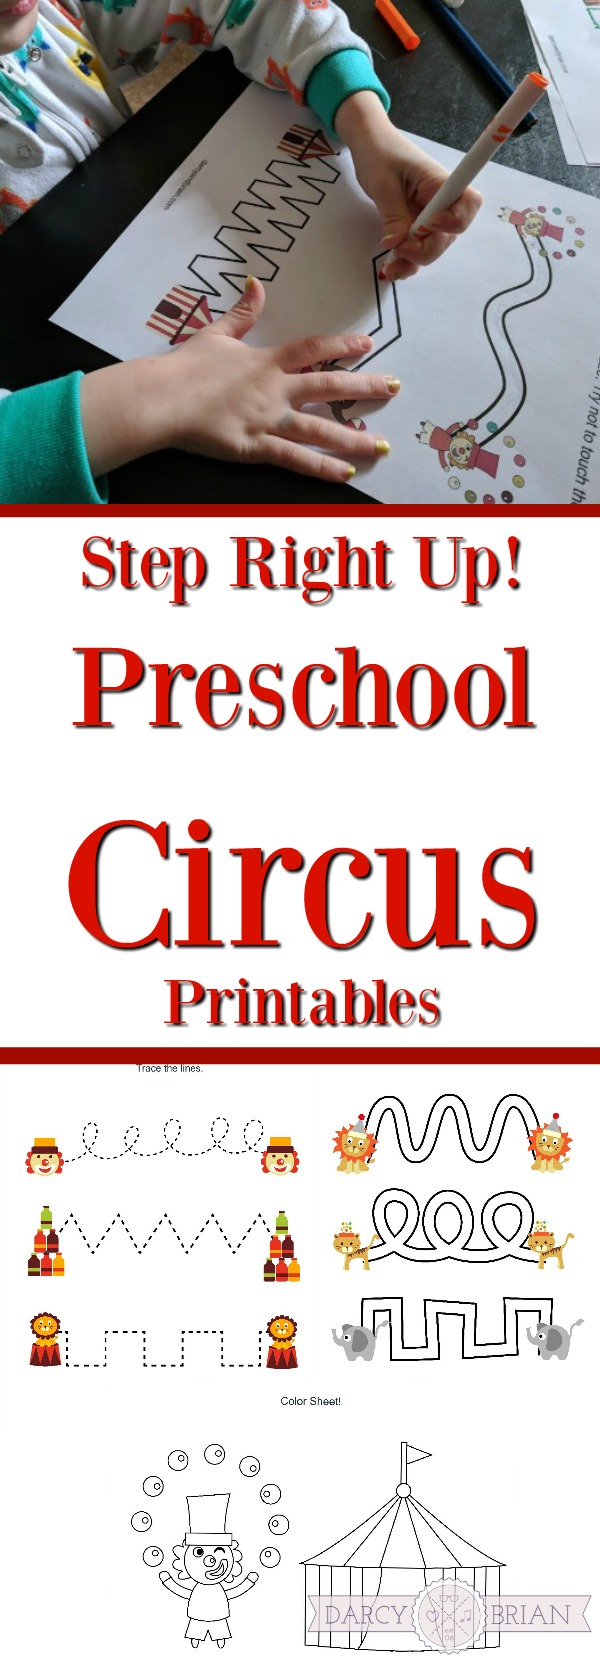 Come one, come all and grab these free Preschool Circus Printables! This circus themed printable pack features cutting, tracing, and coloring activities. Perfect for practicing preschool skills! Use them for homeschooling or classroom centers.